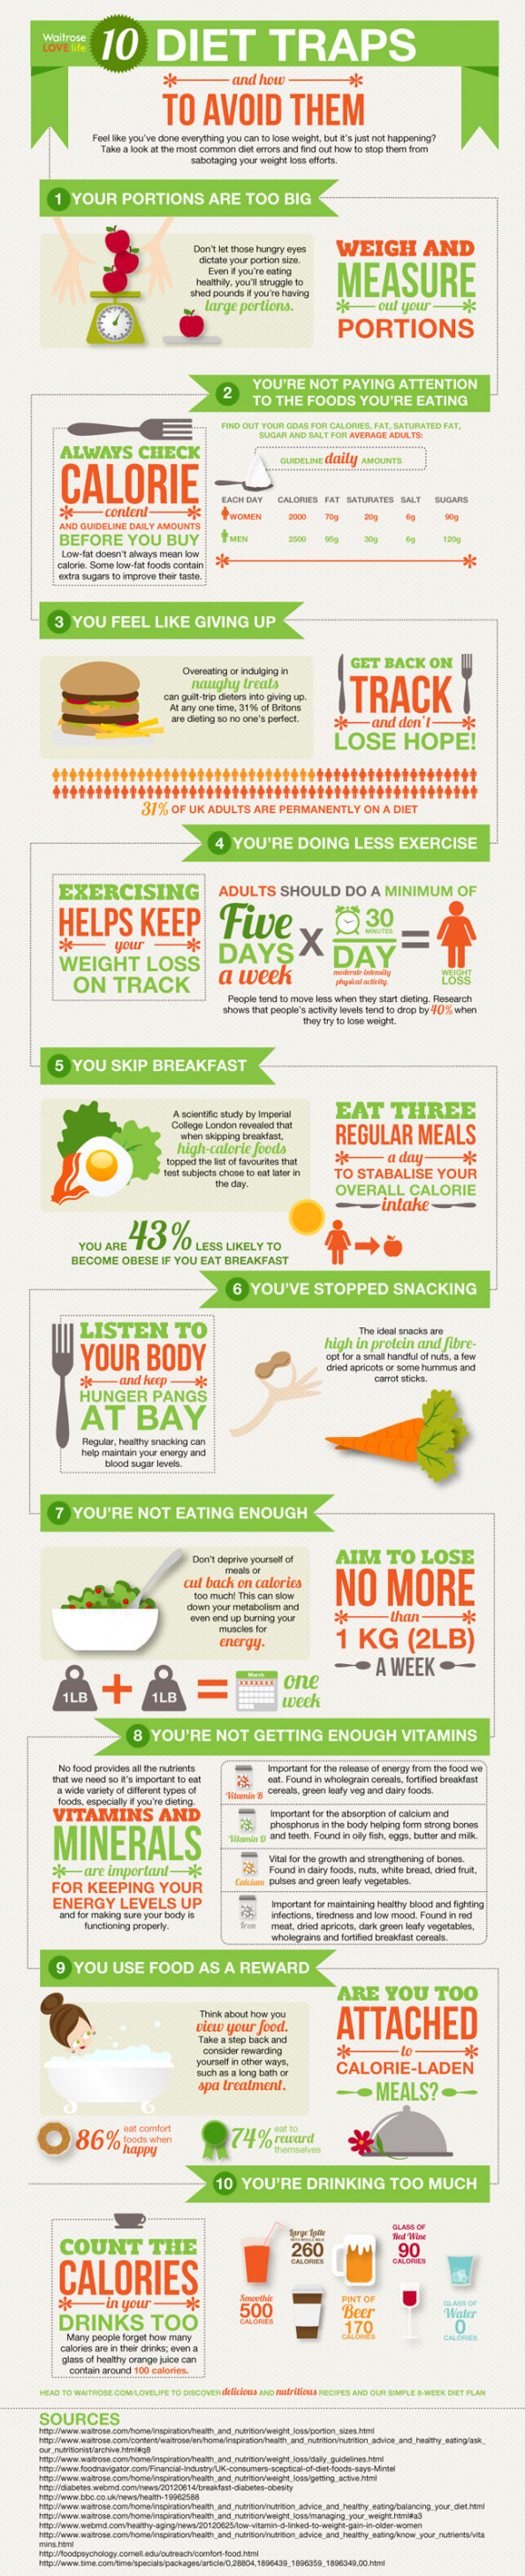 10 Diet Traps and How to Avoid Them Infographic